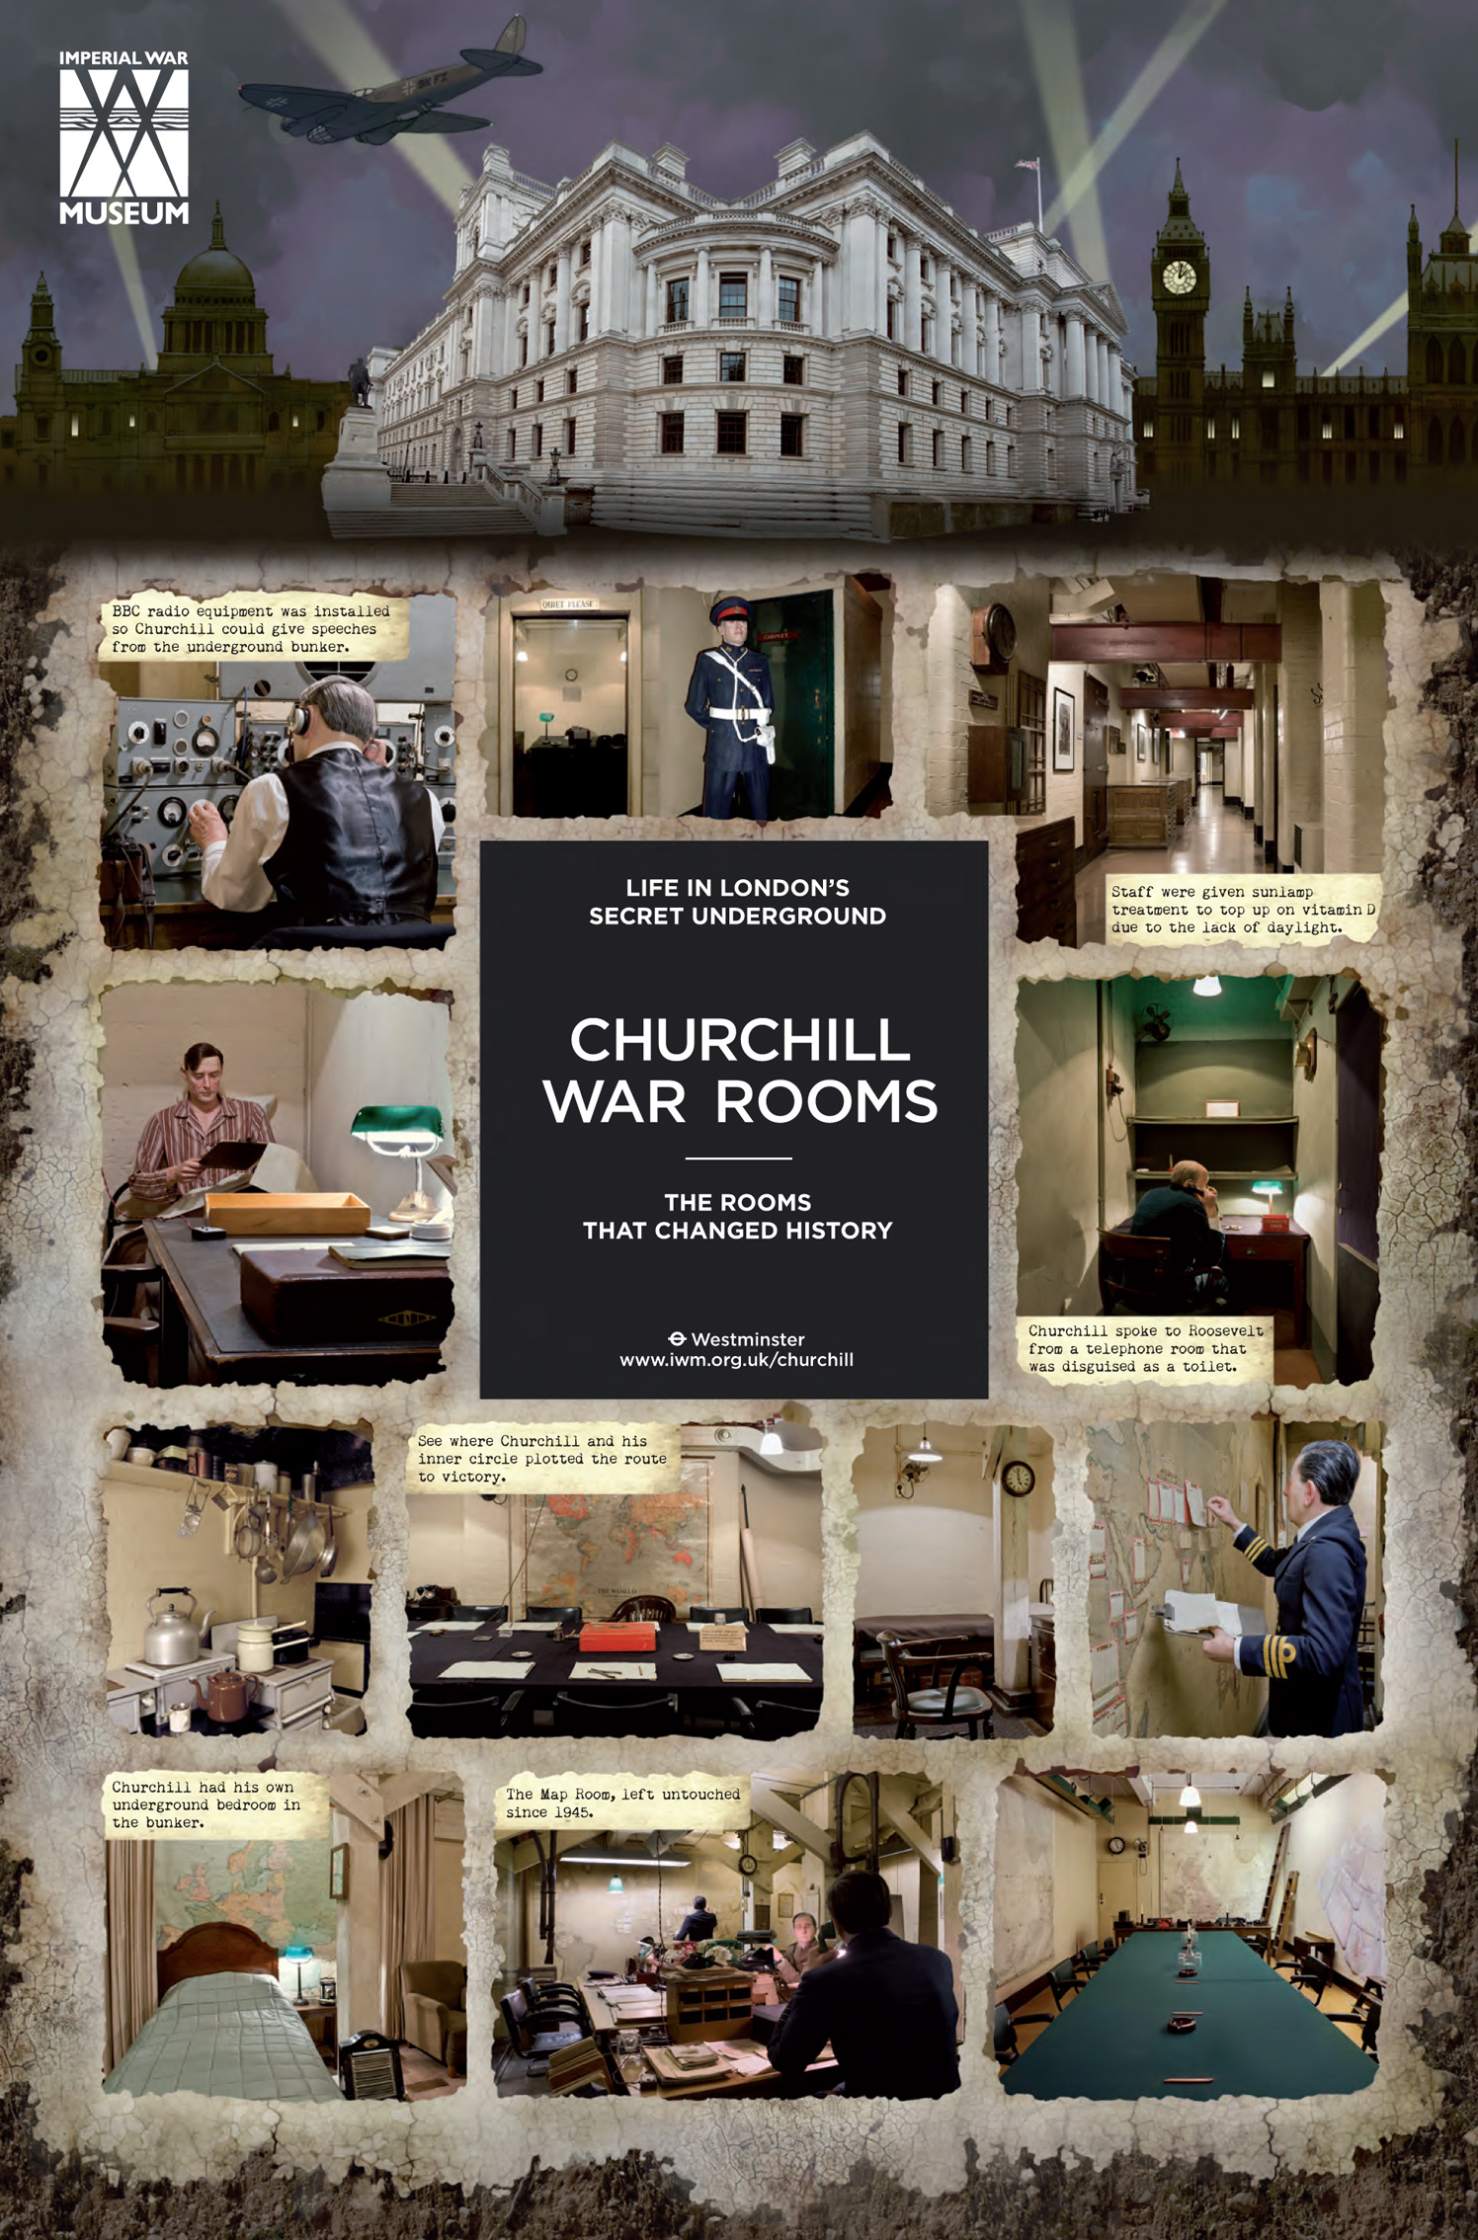 Churchill War Rooms / The Imperial War Museum